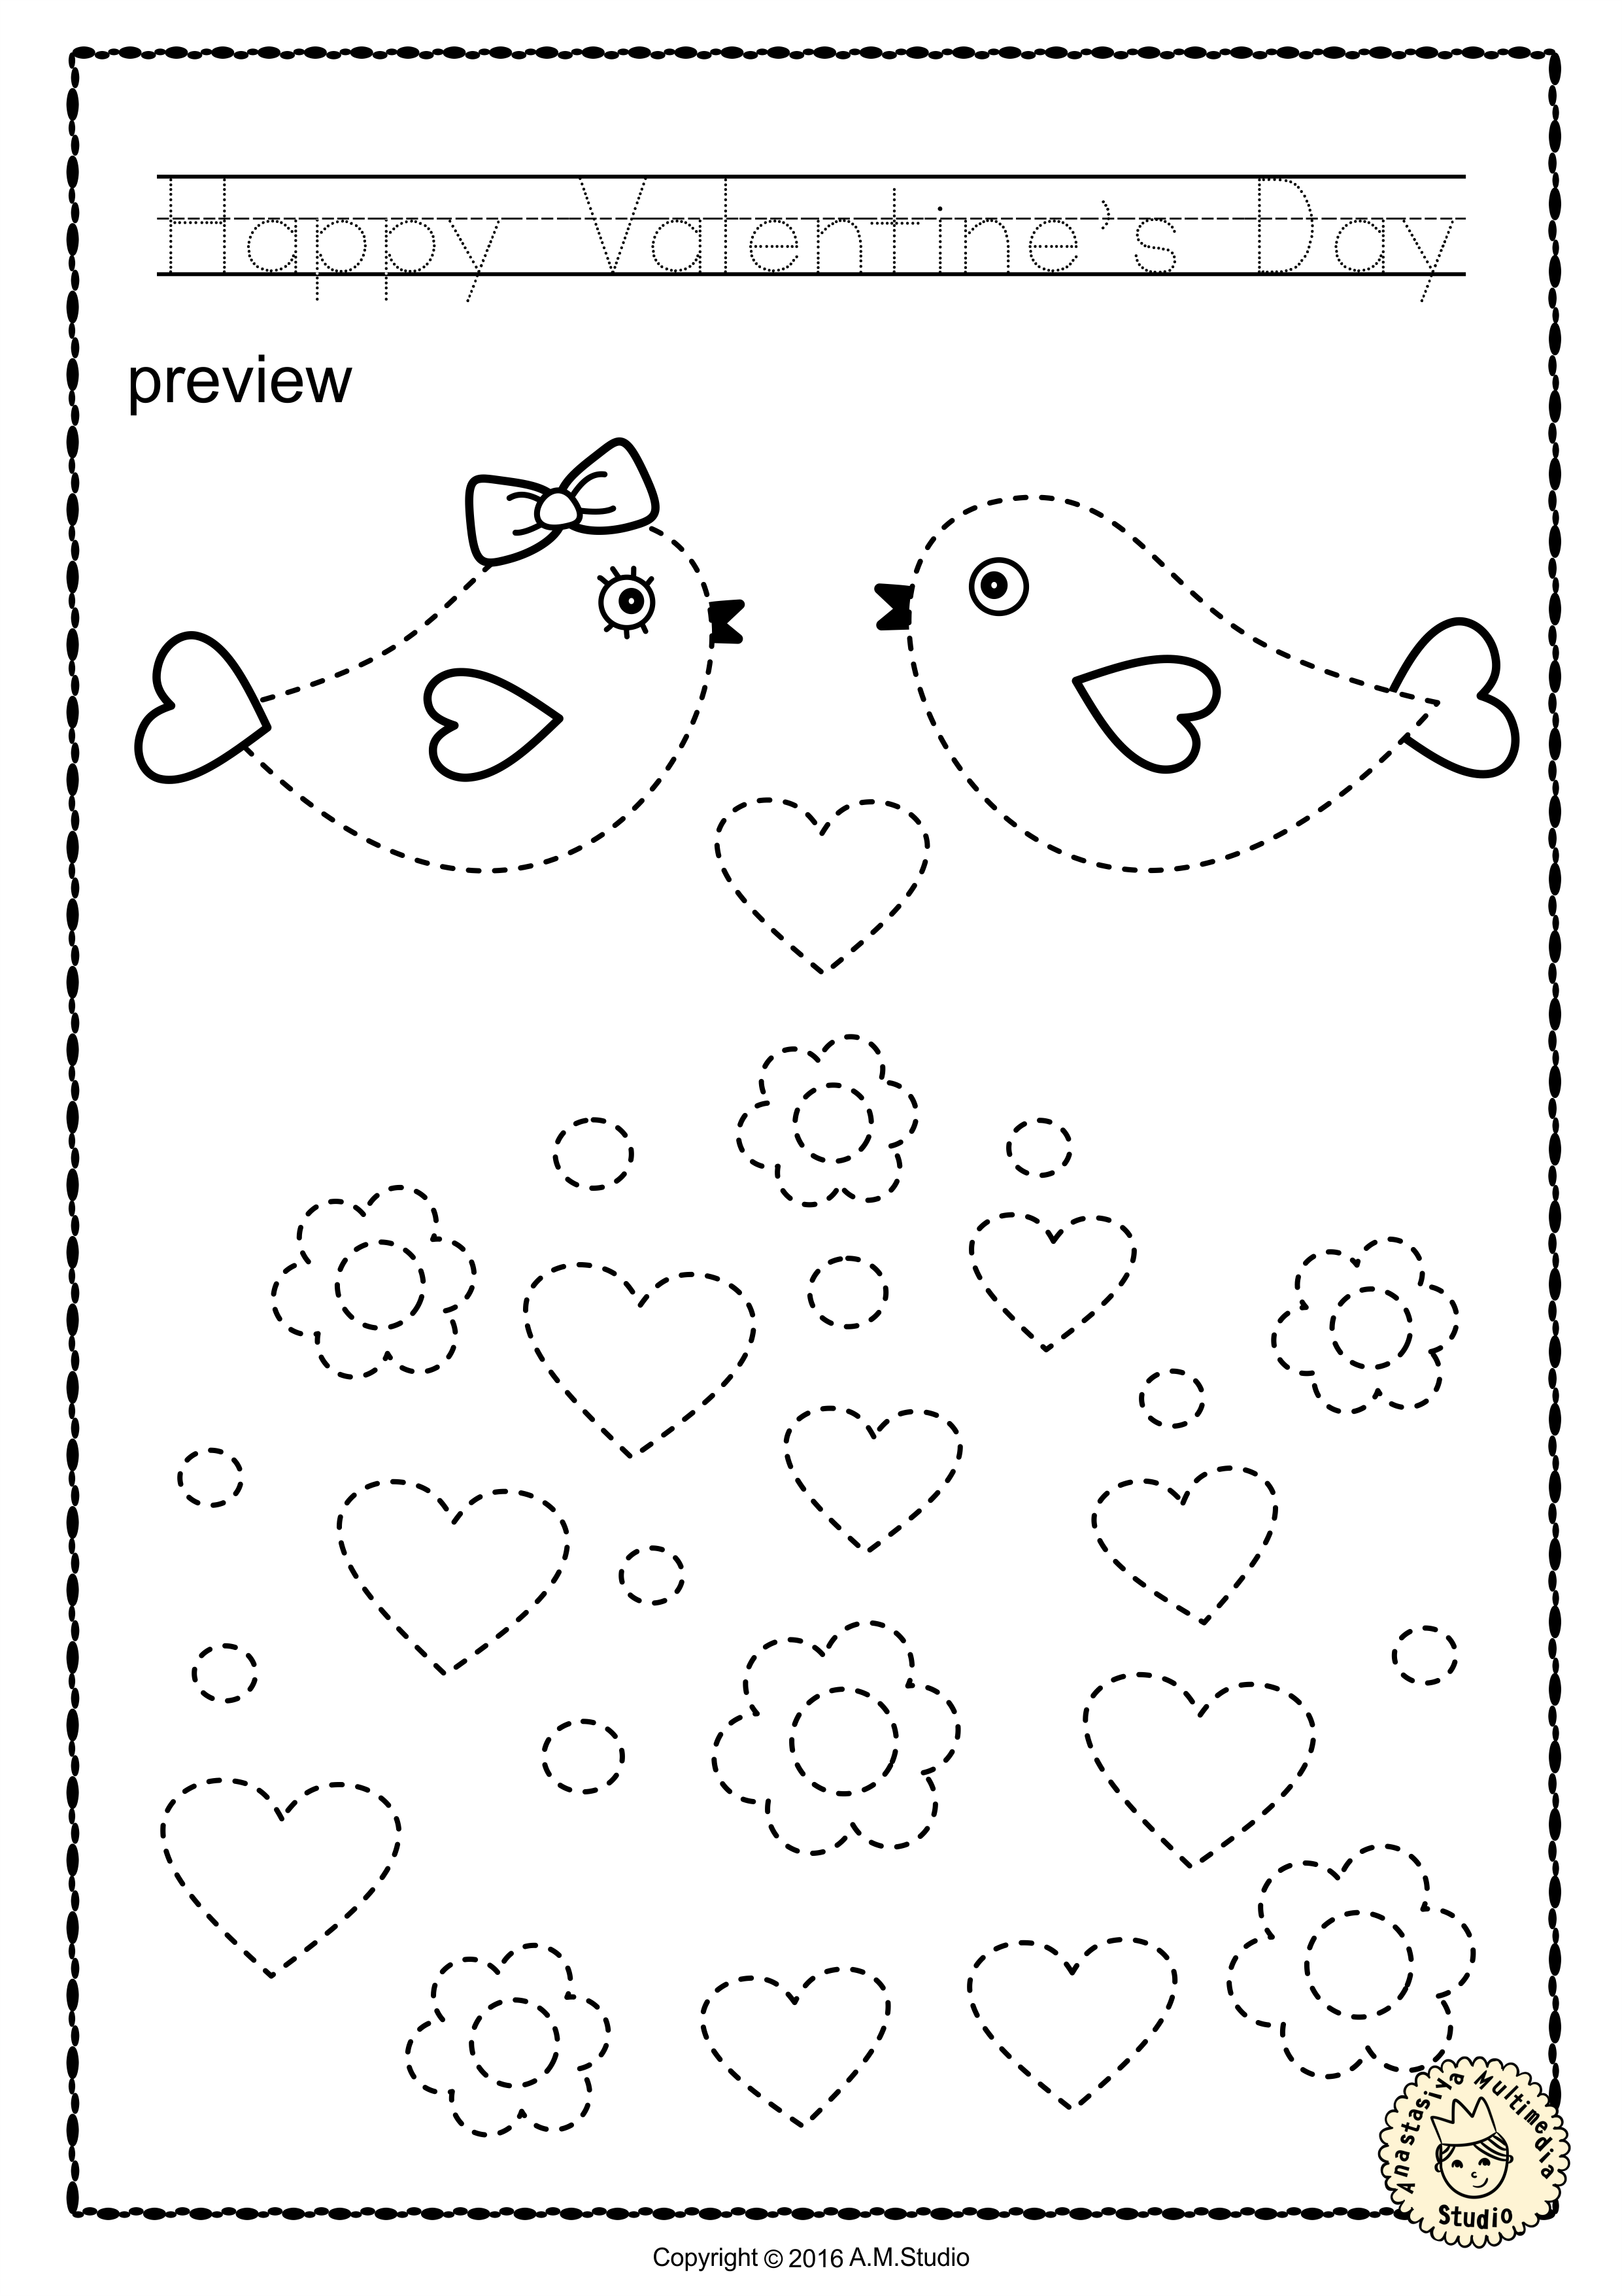 worksheet Tracing And Colouring Worksheets tis pdf file includes 20 valentines day themed tracing and coloring worksheets